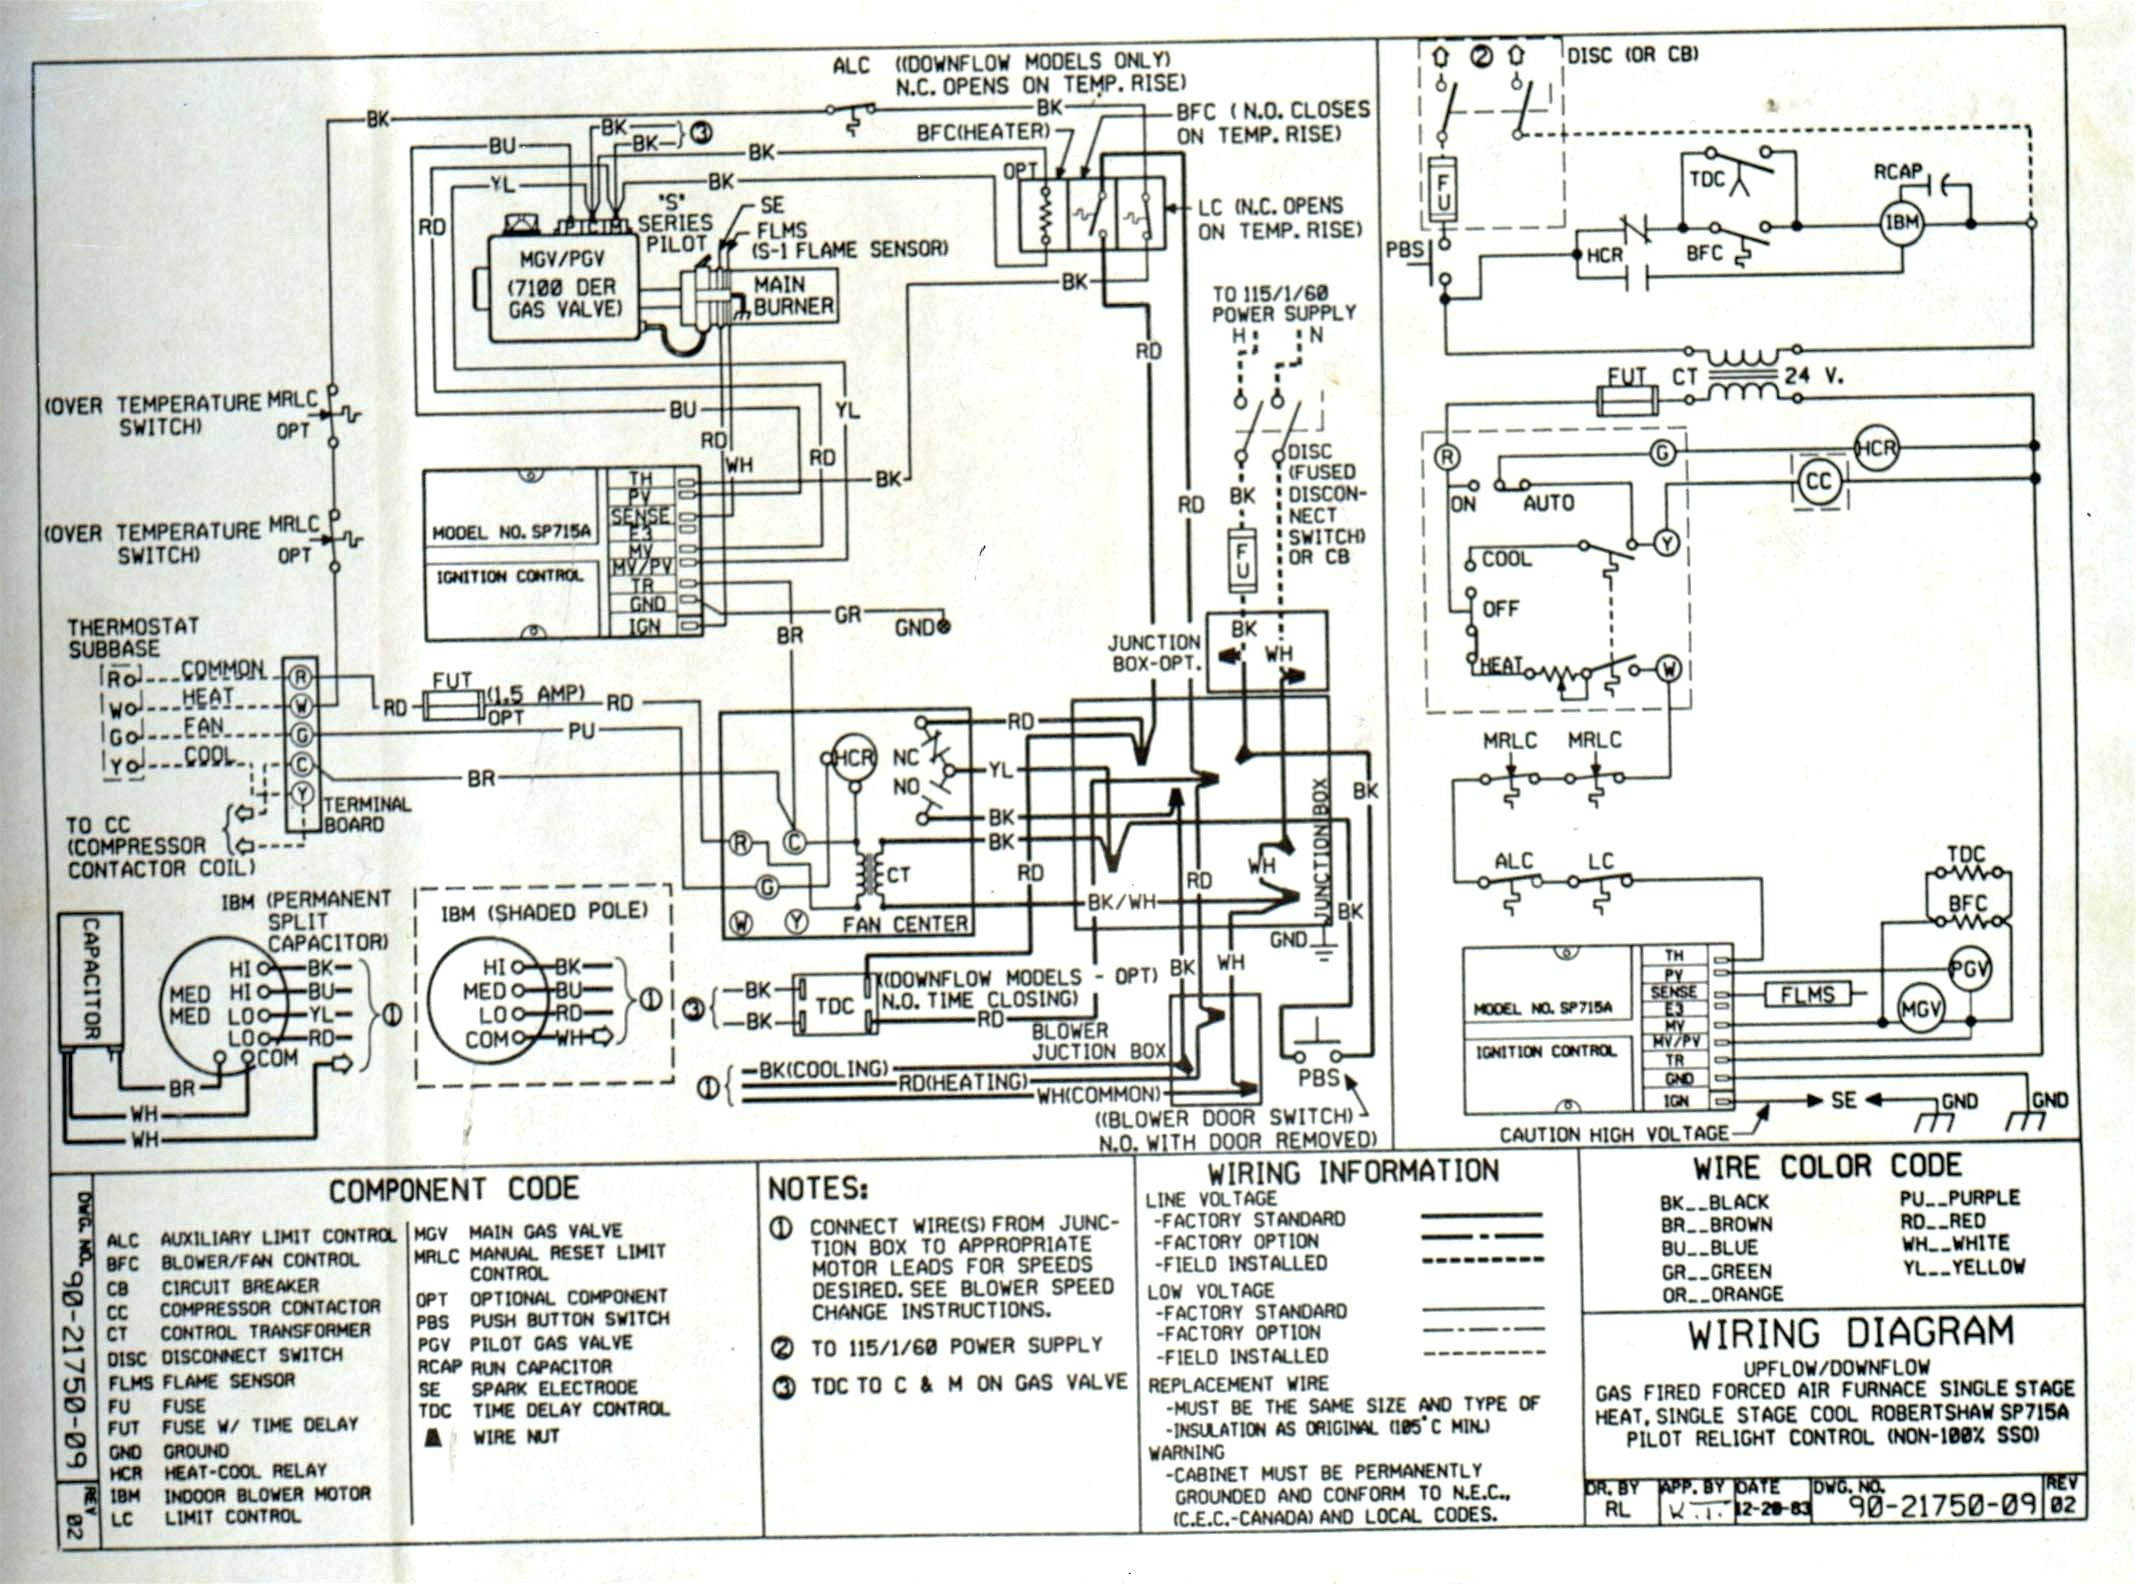 Asco Series 300 Wiring Schematic Diagram Will Be A Thing Renault Grand Espace Get Sample Rh Worldvisionsummerfest Com 480v Ats